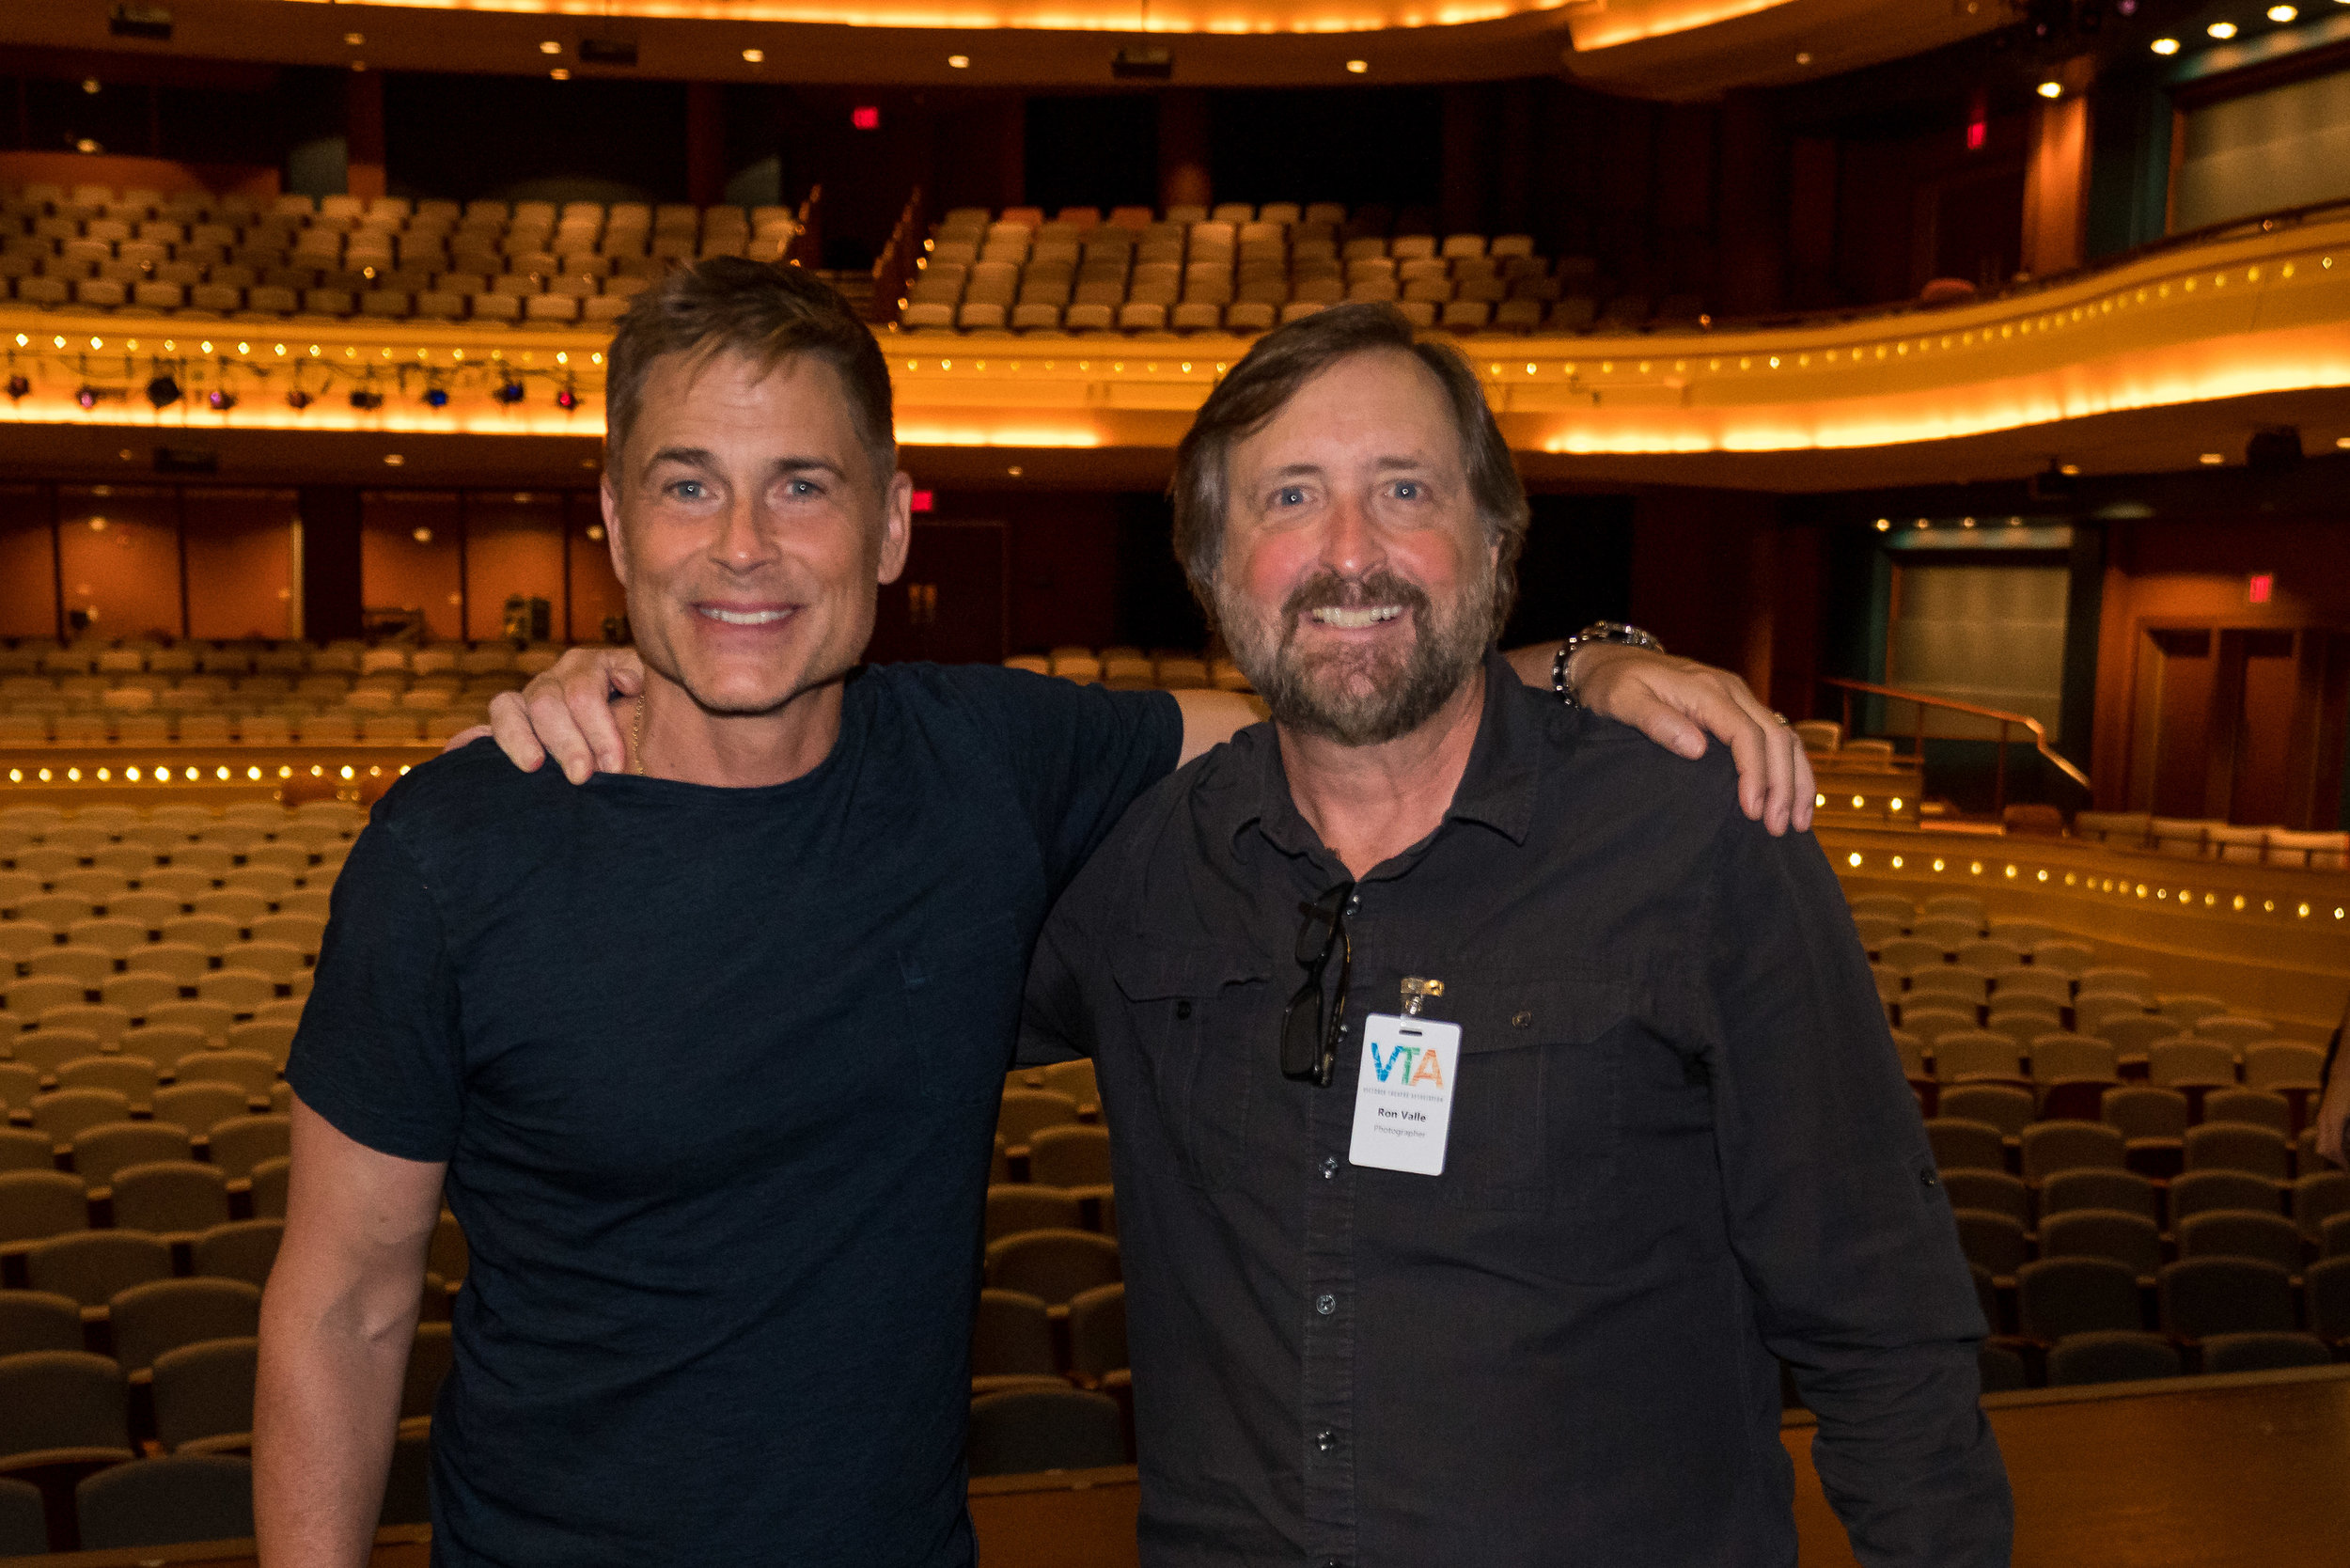 Rob Lowe Meet and Greet at Dayton's Schuster Center